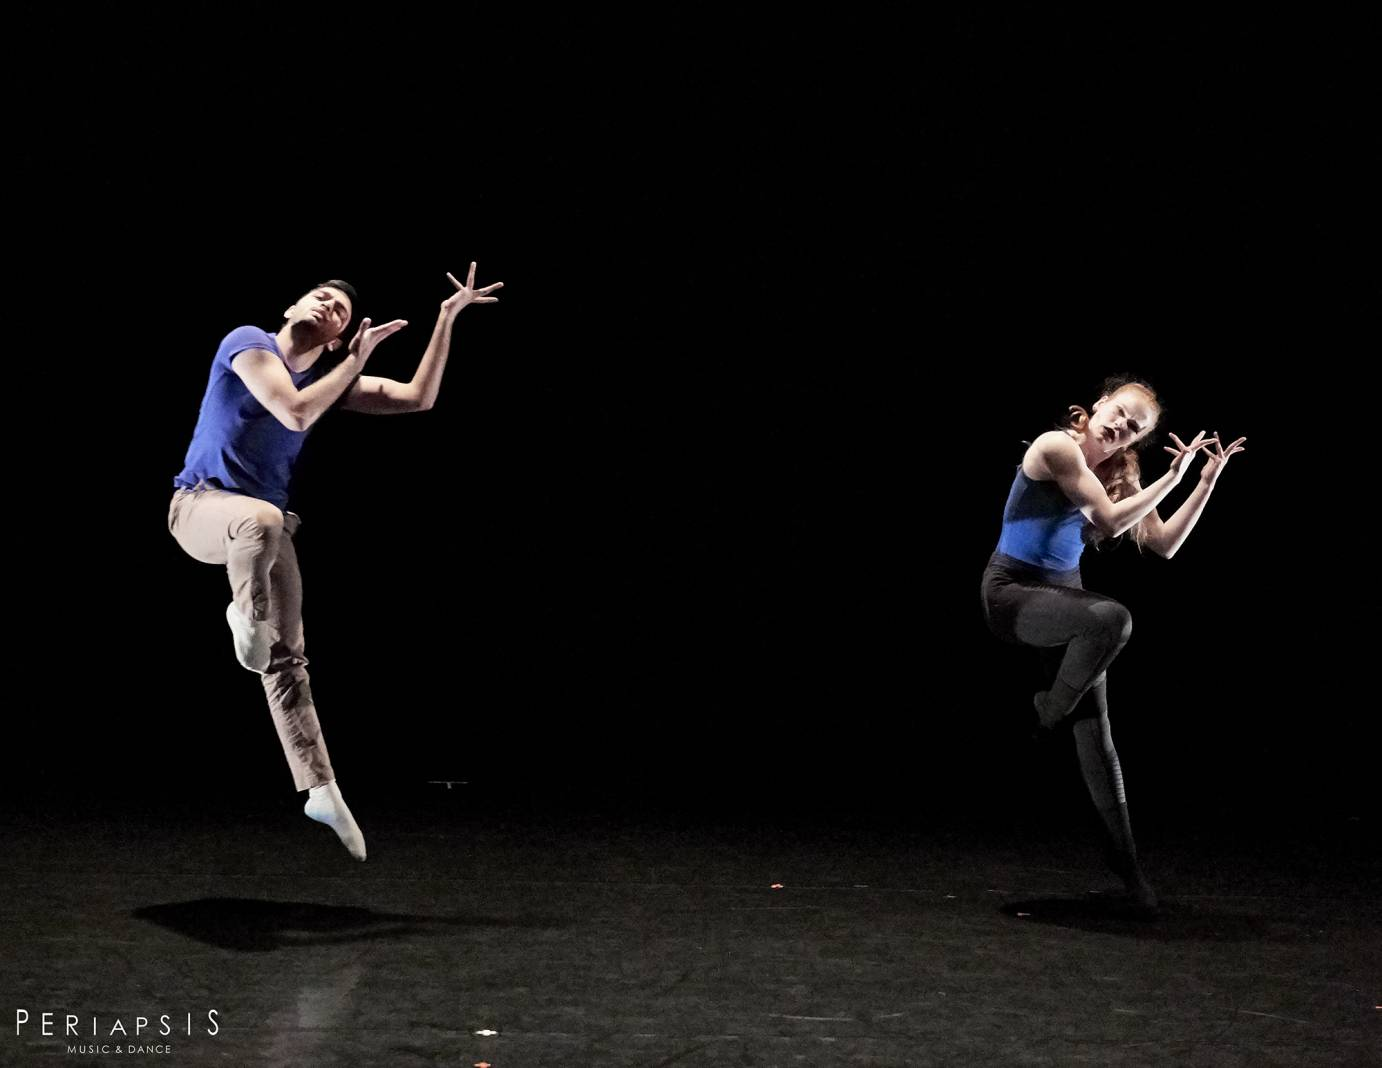 A man and a woman in blue tops jump with one leg touching their knee and splayed fingers